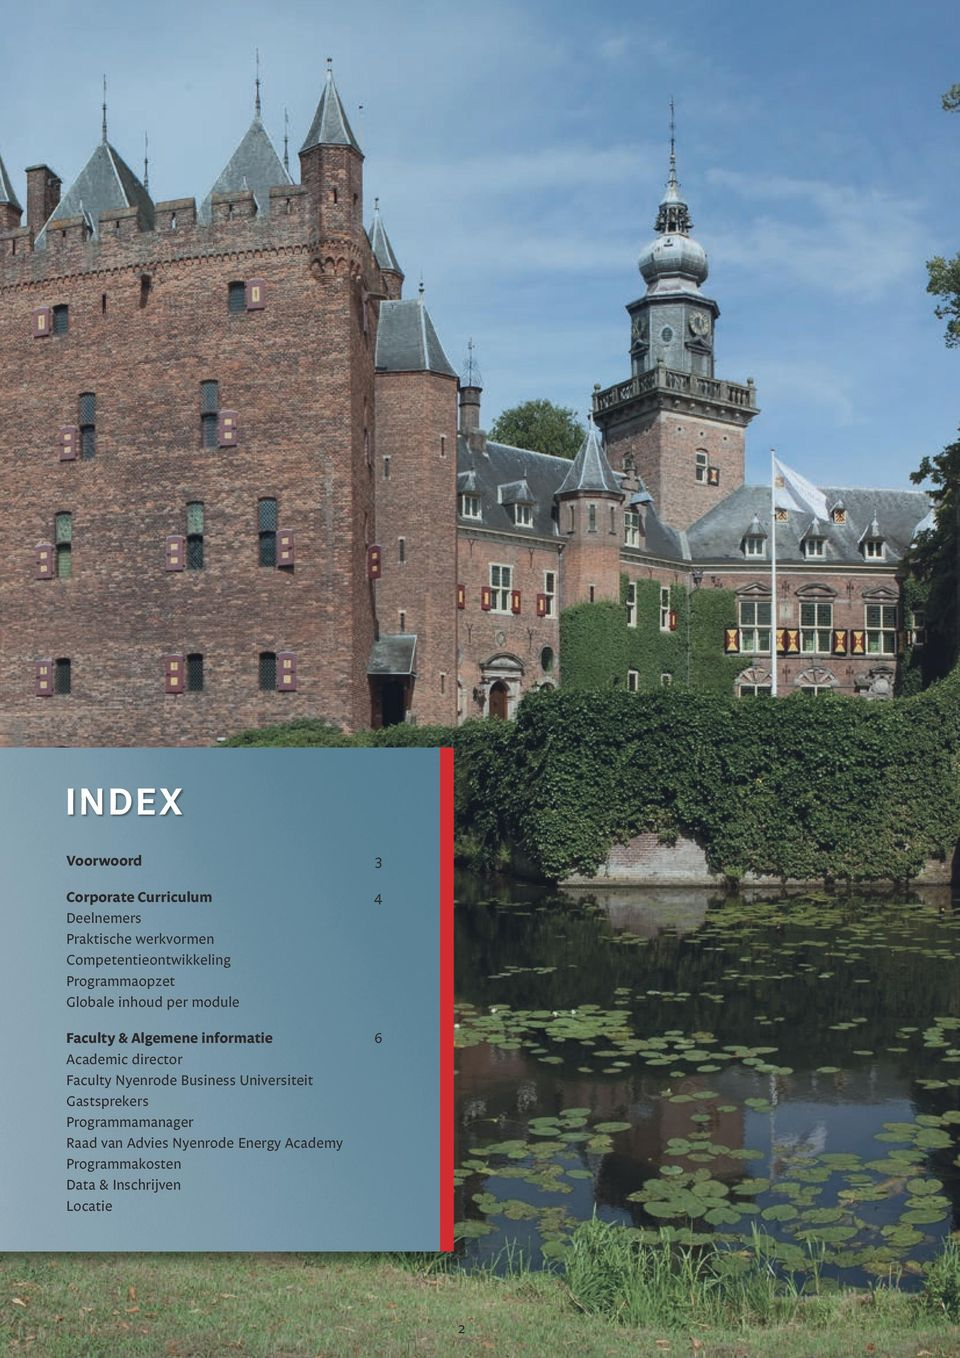 informatie 6 Academic director Faculty Nyenrode Business Universiteit Gastsprekers